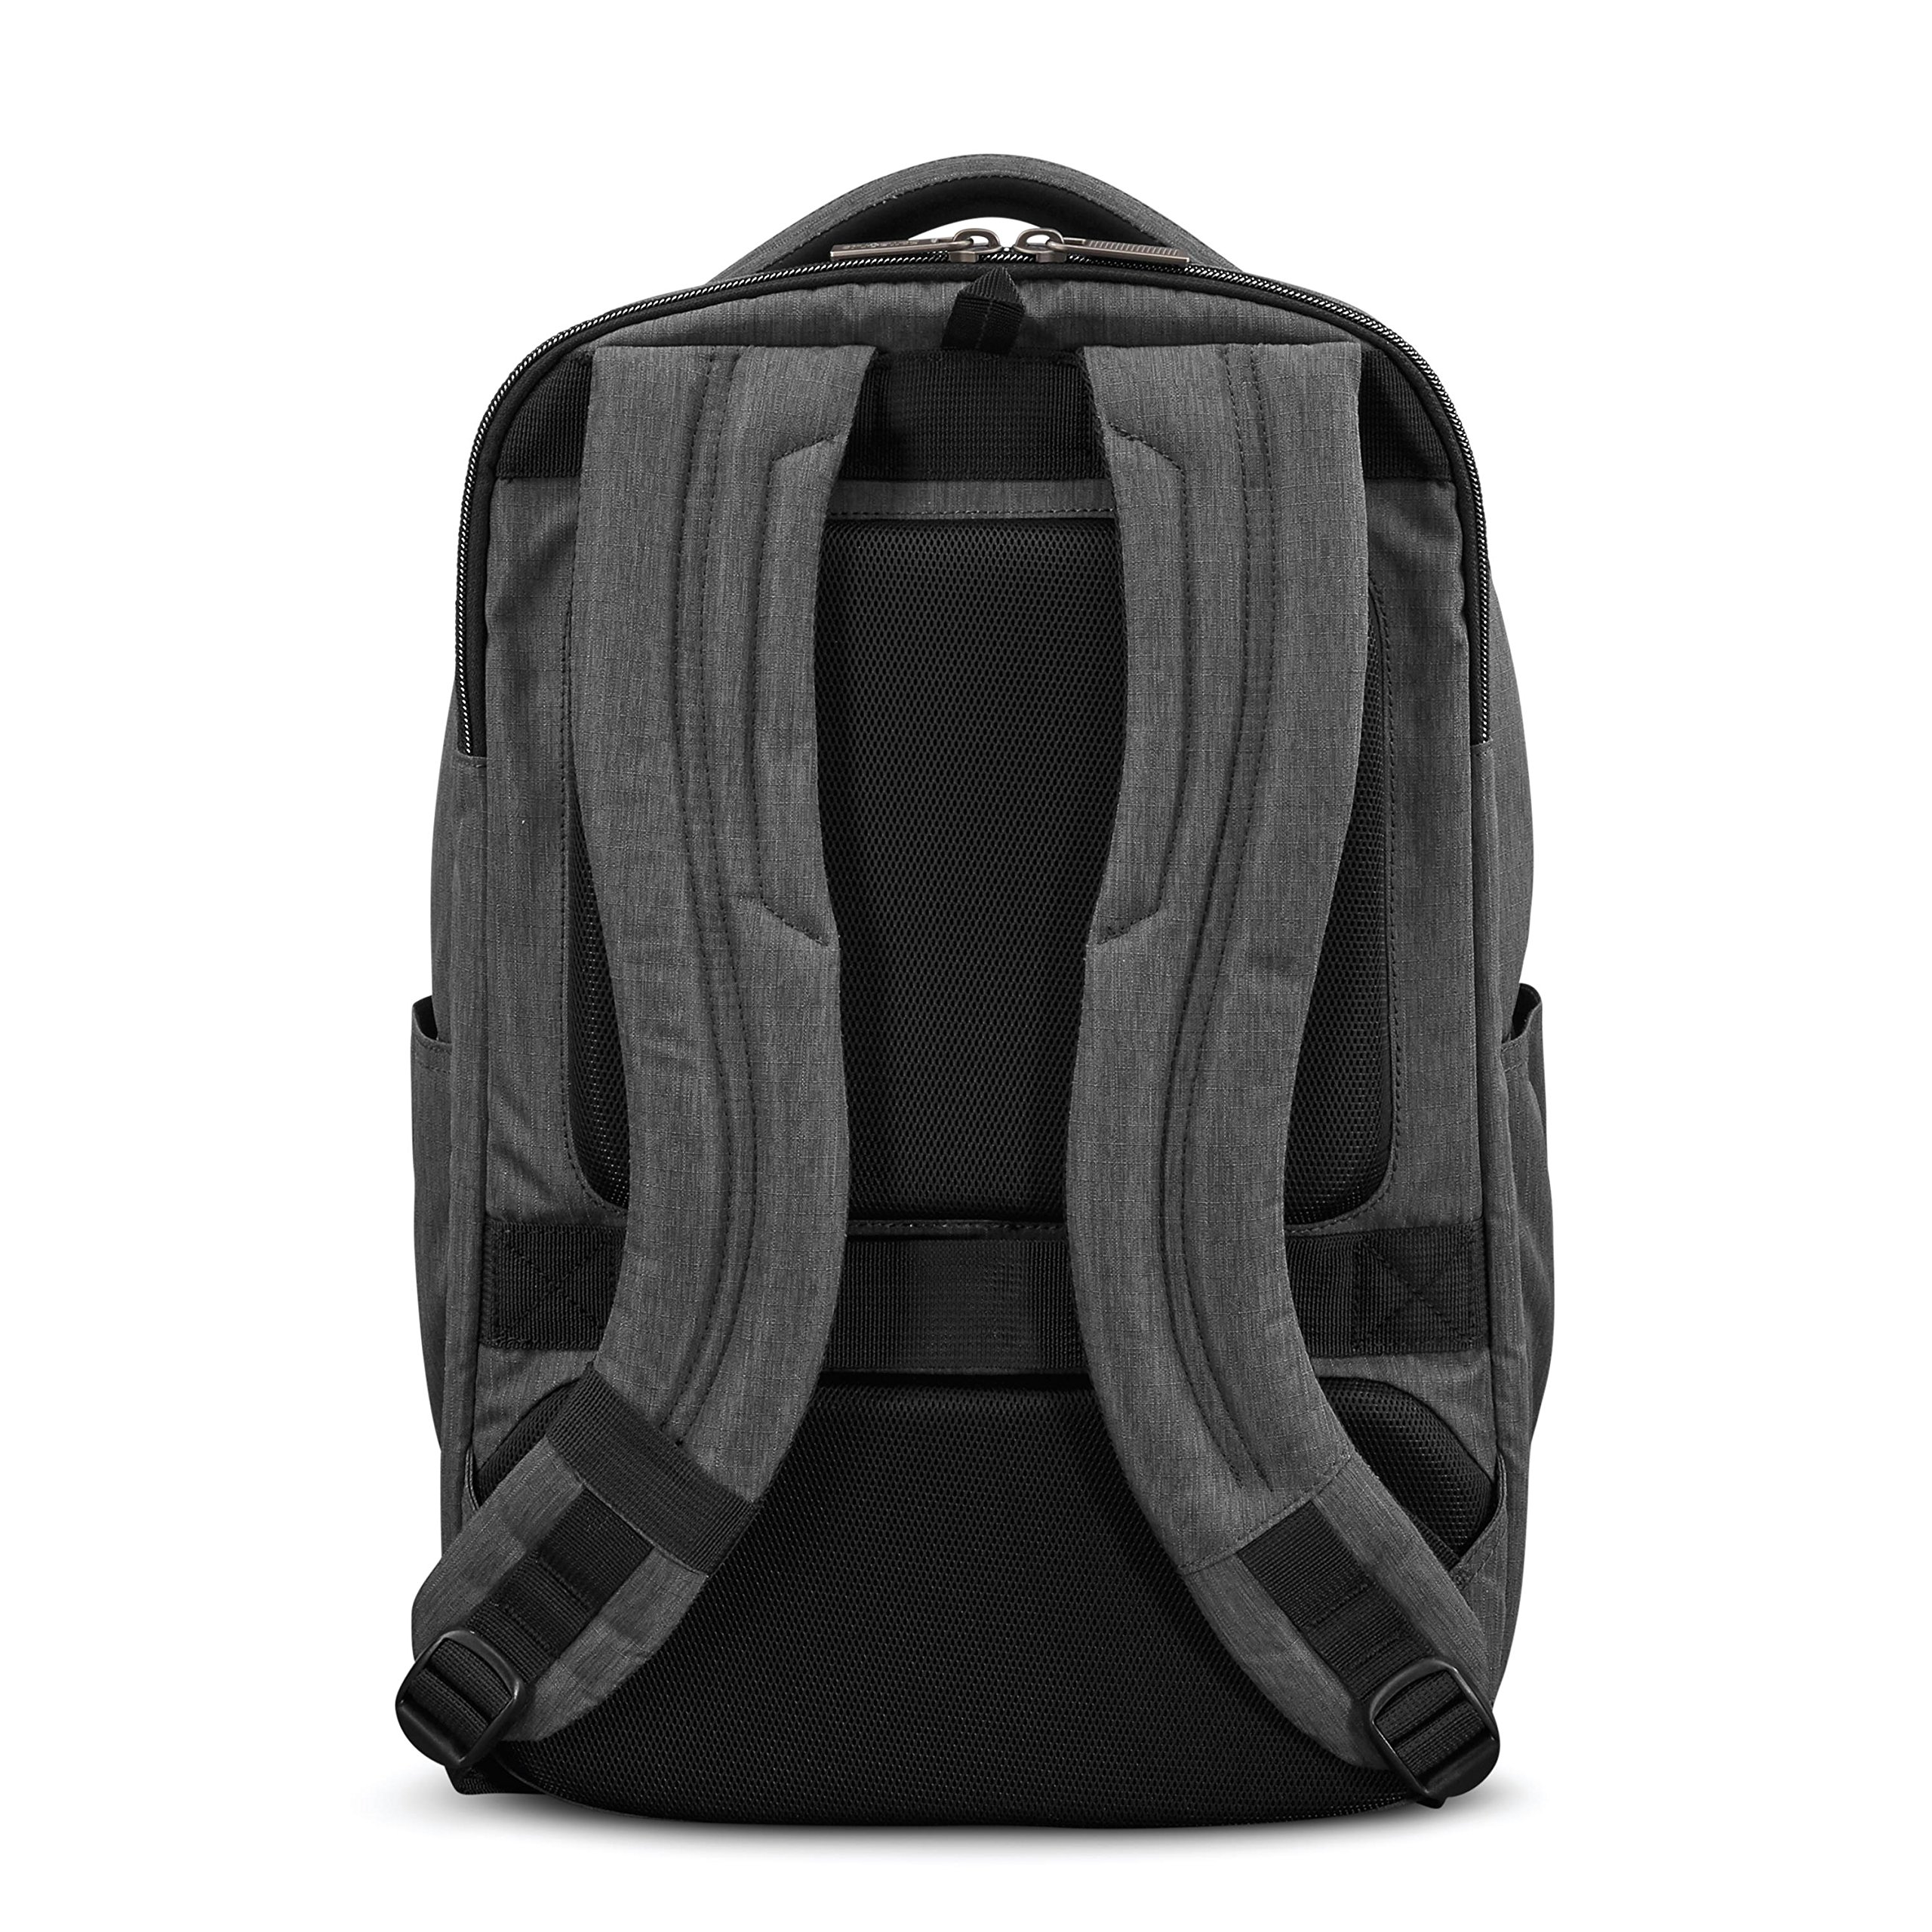 Samsonite Modern Utility Paracycle Backpack Laptop, Charcoal Heather, One Size by Samsonite (Image #2)